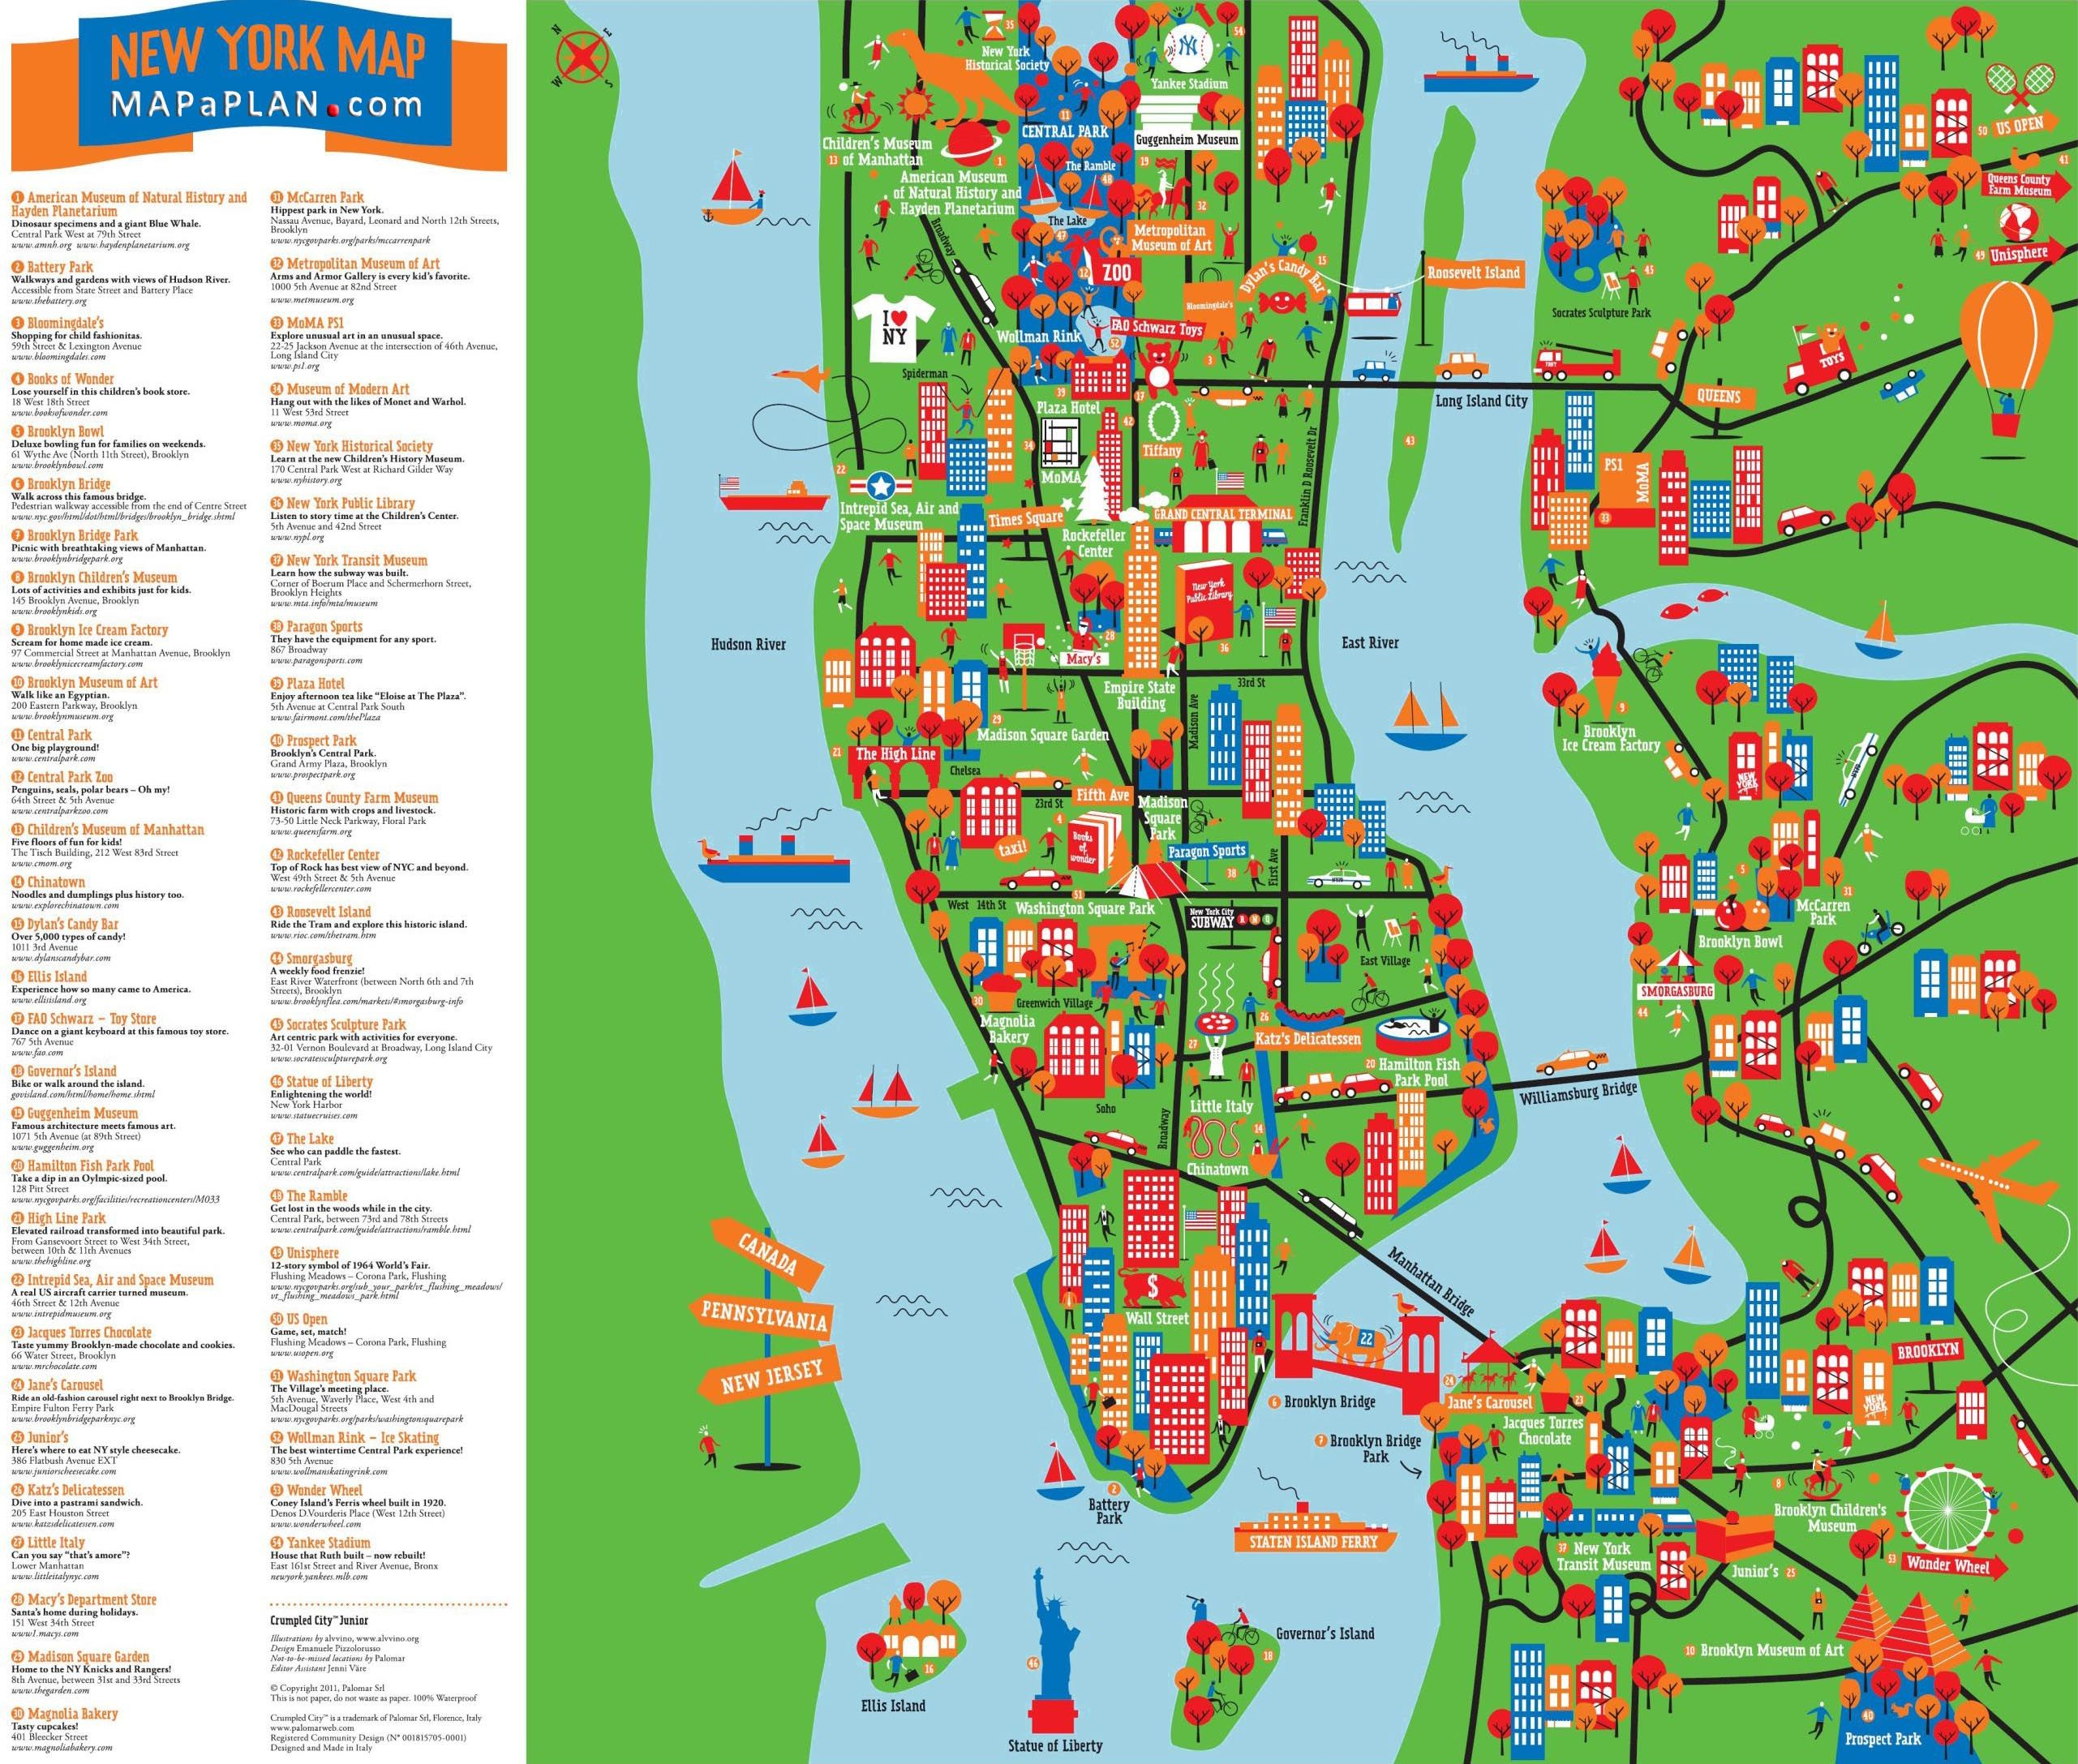 greatthingstodowithkidschildreninteractivecolorfulnew – Panama City Tourist Map